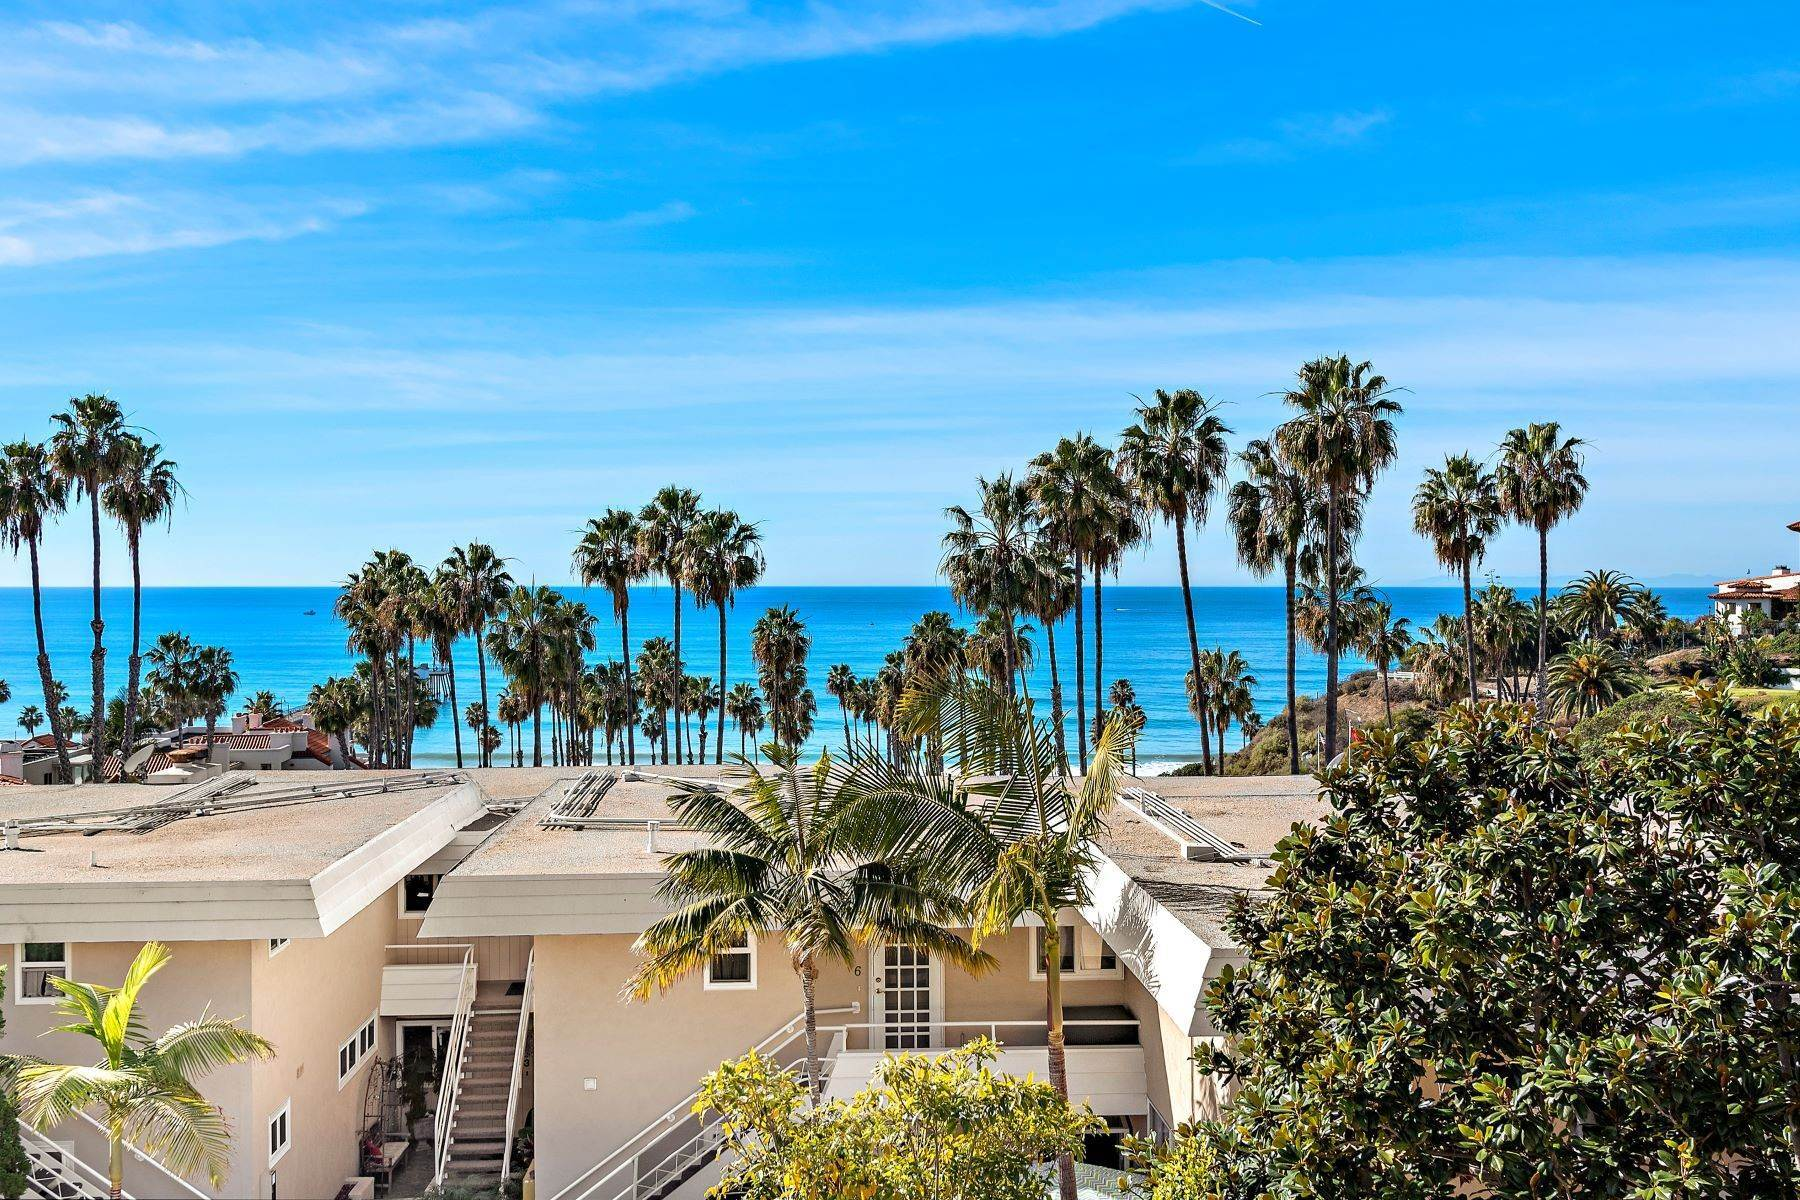 3. Condominiums for Sale at 321 Acebo Lane Unit #C, San Clemente, CA 92672 321 Acebo Lane, Unit #C San Clemente, California 92672 United States